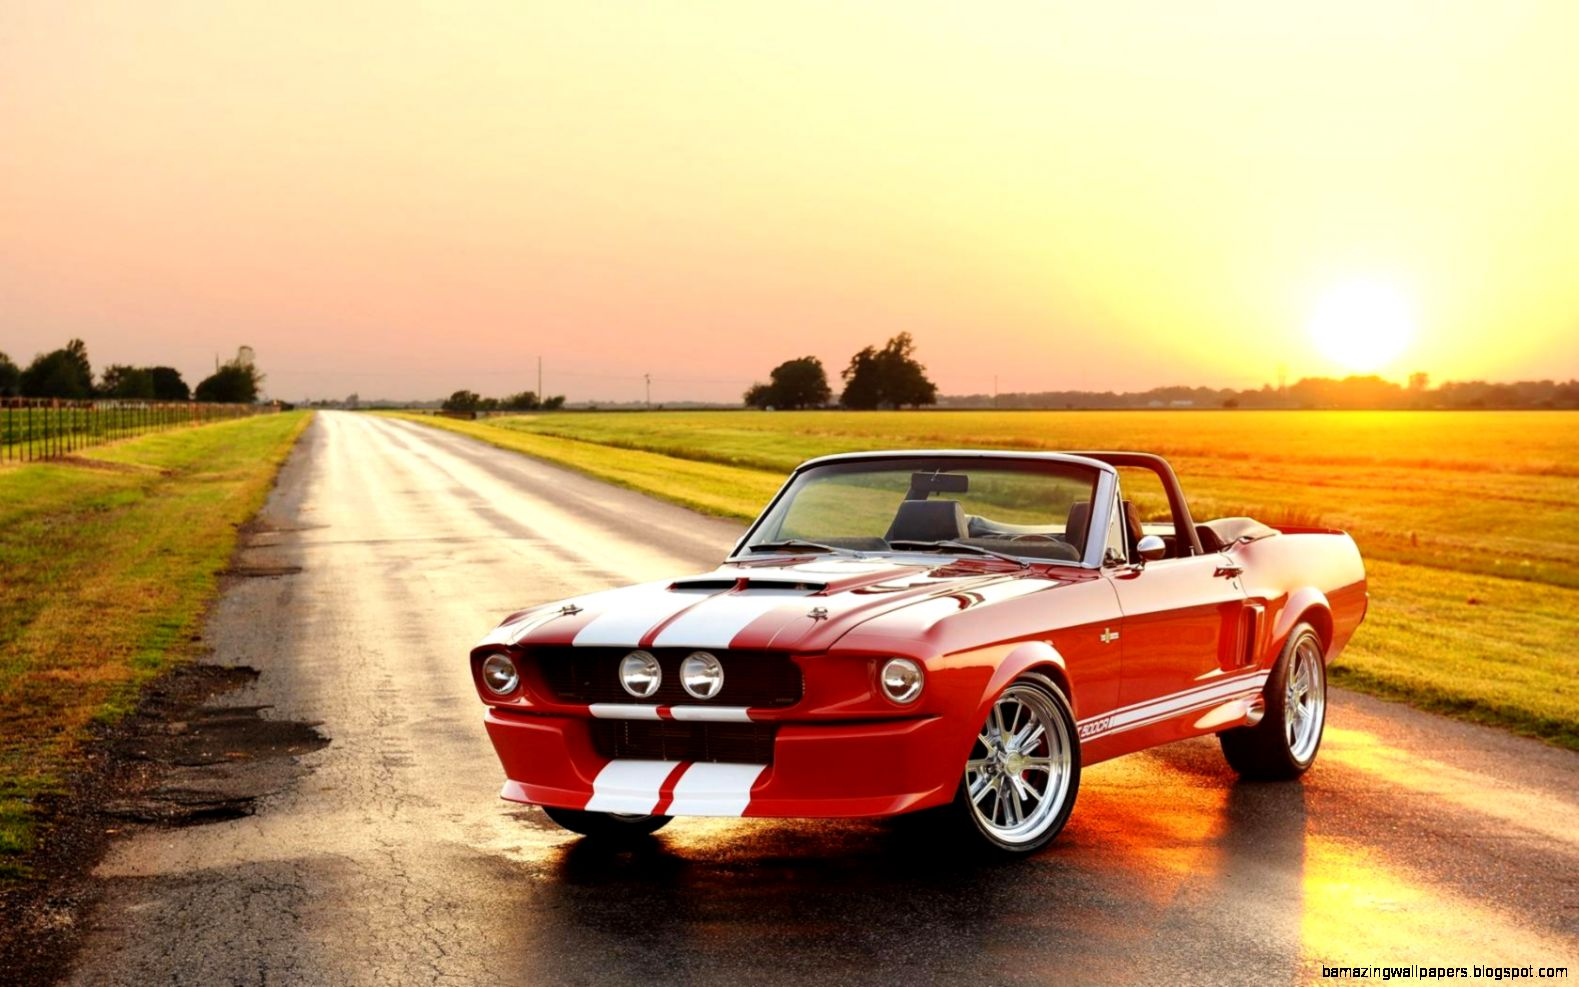 American Classic Cars Wallpaper Amazing Wallpapers